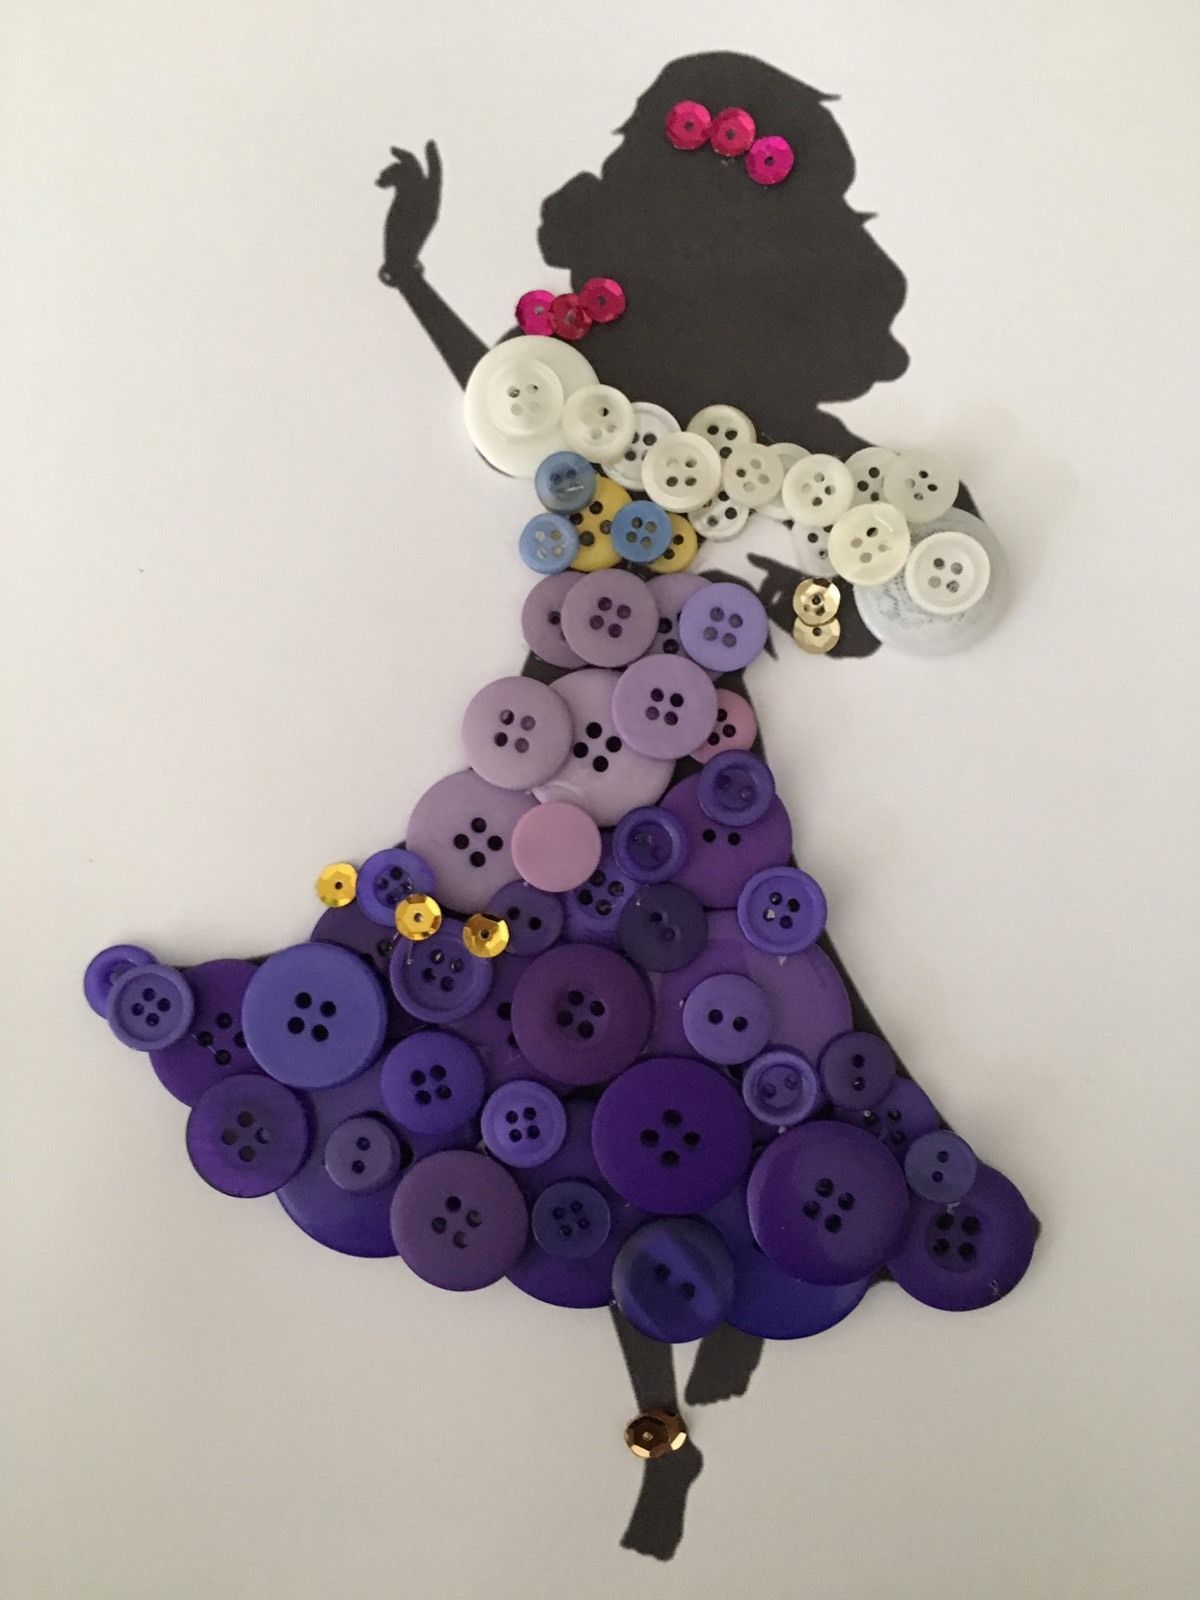 Pin de Jamey en Disney Button Art | Pinterest | Botones, Cuadro y ...